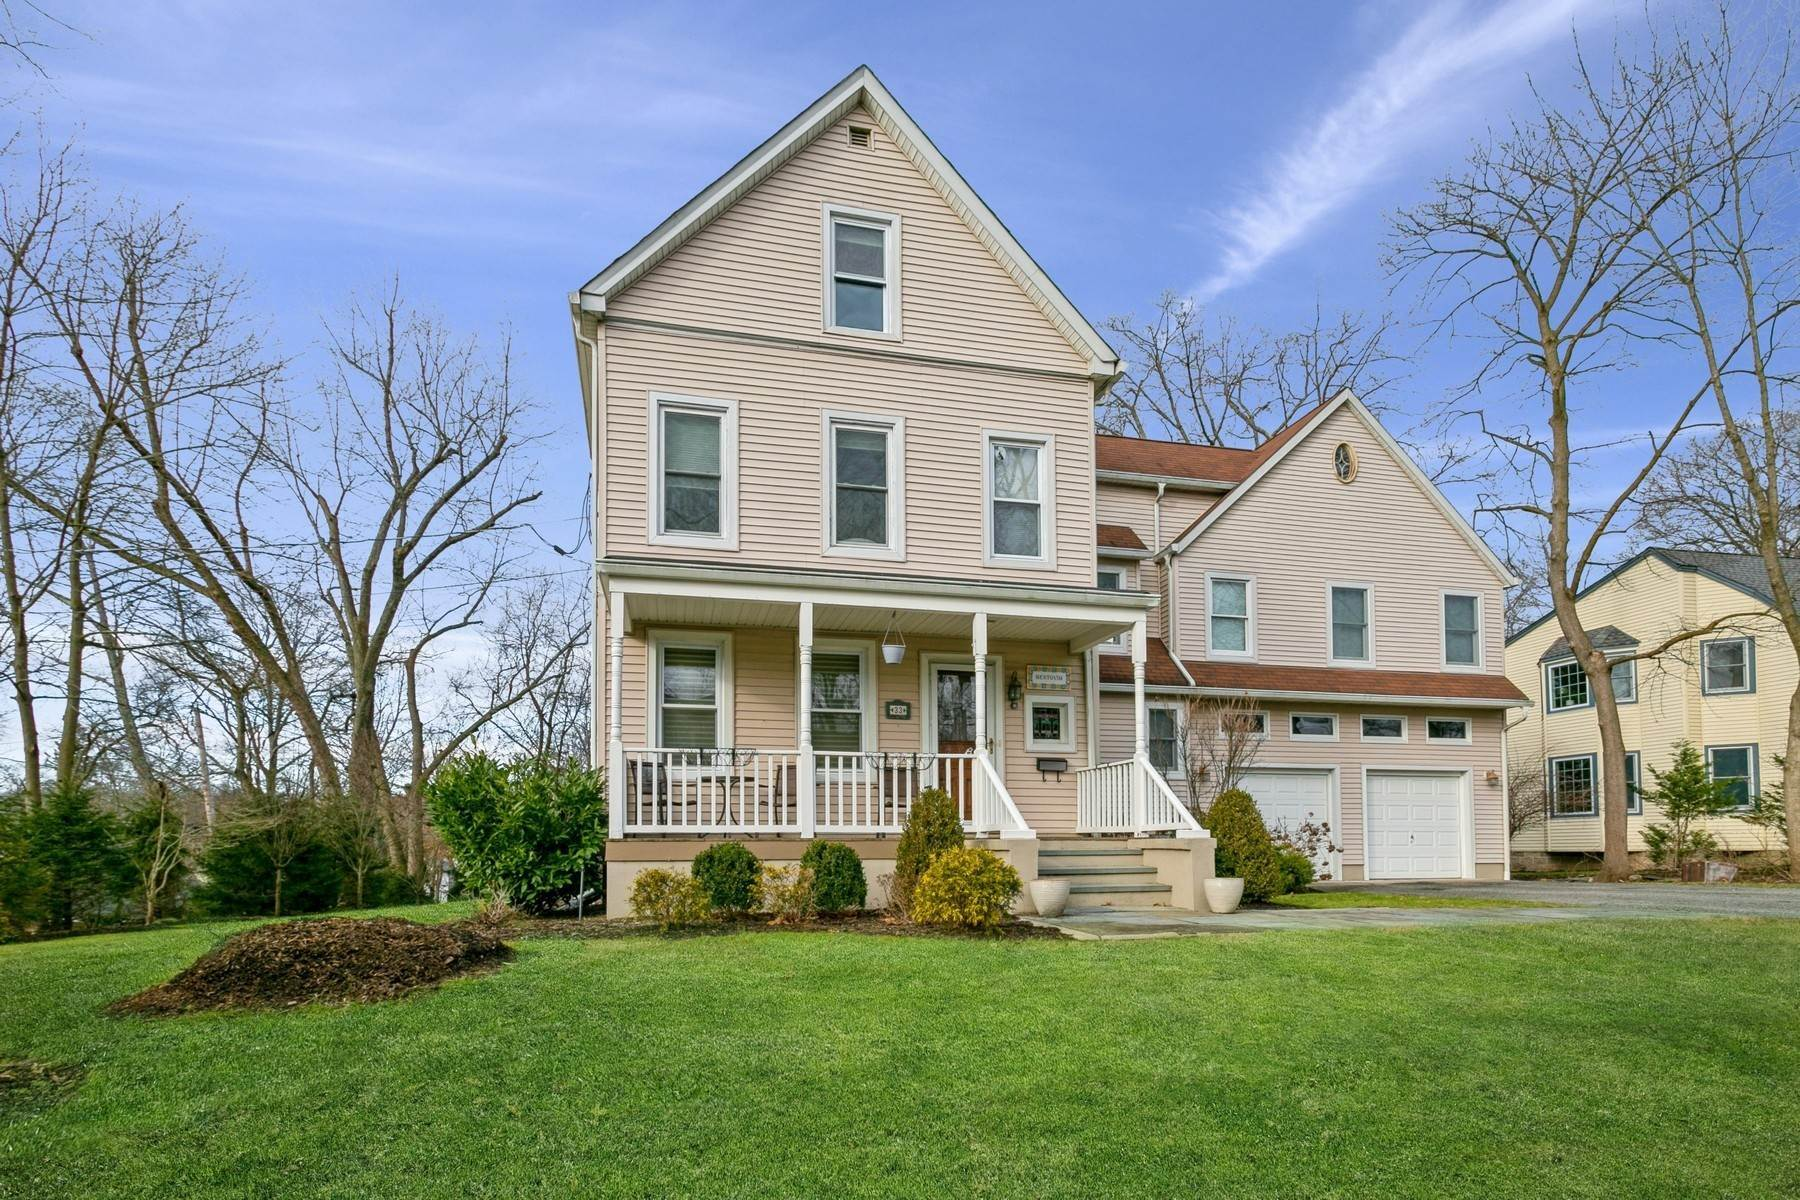 Single Family Homes for Sale at Magical Home! 33 Blanche Ave, Demarest, New Jersey 07627 United States